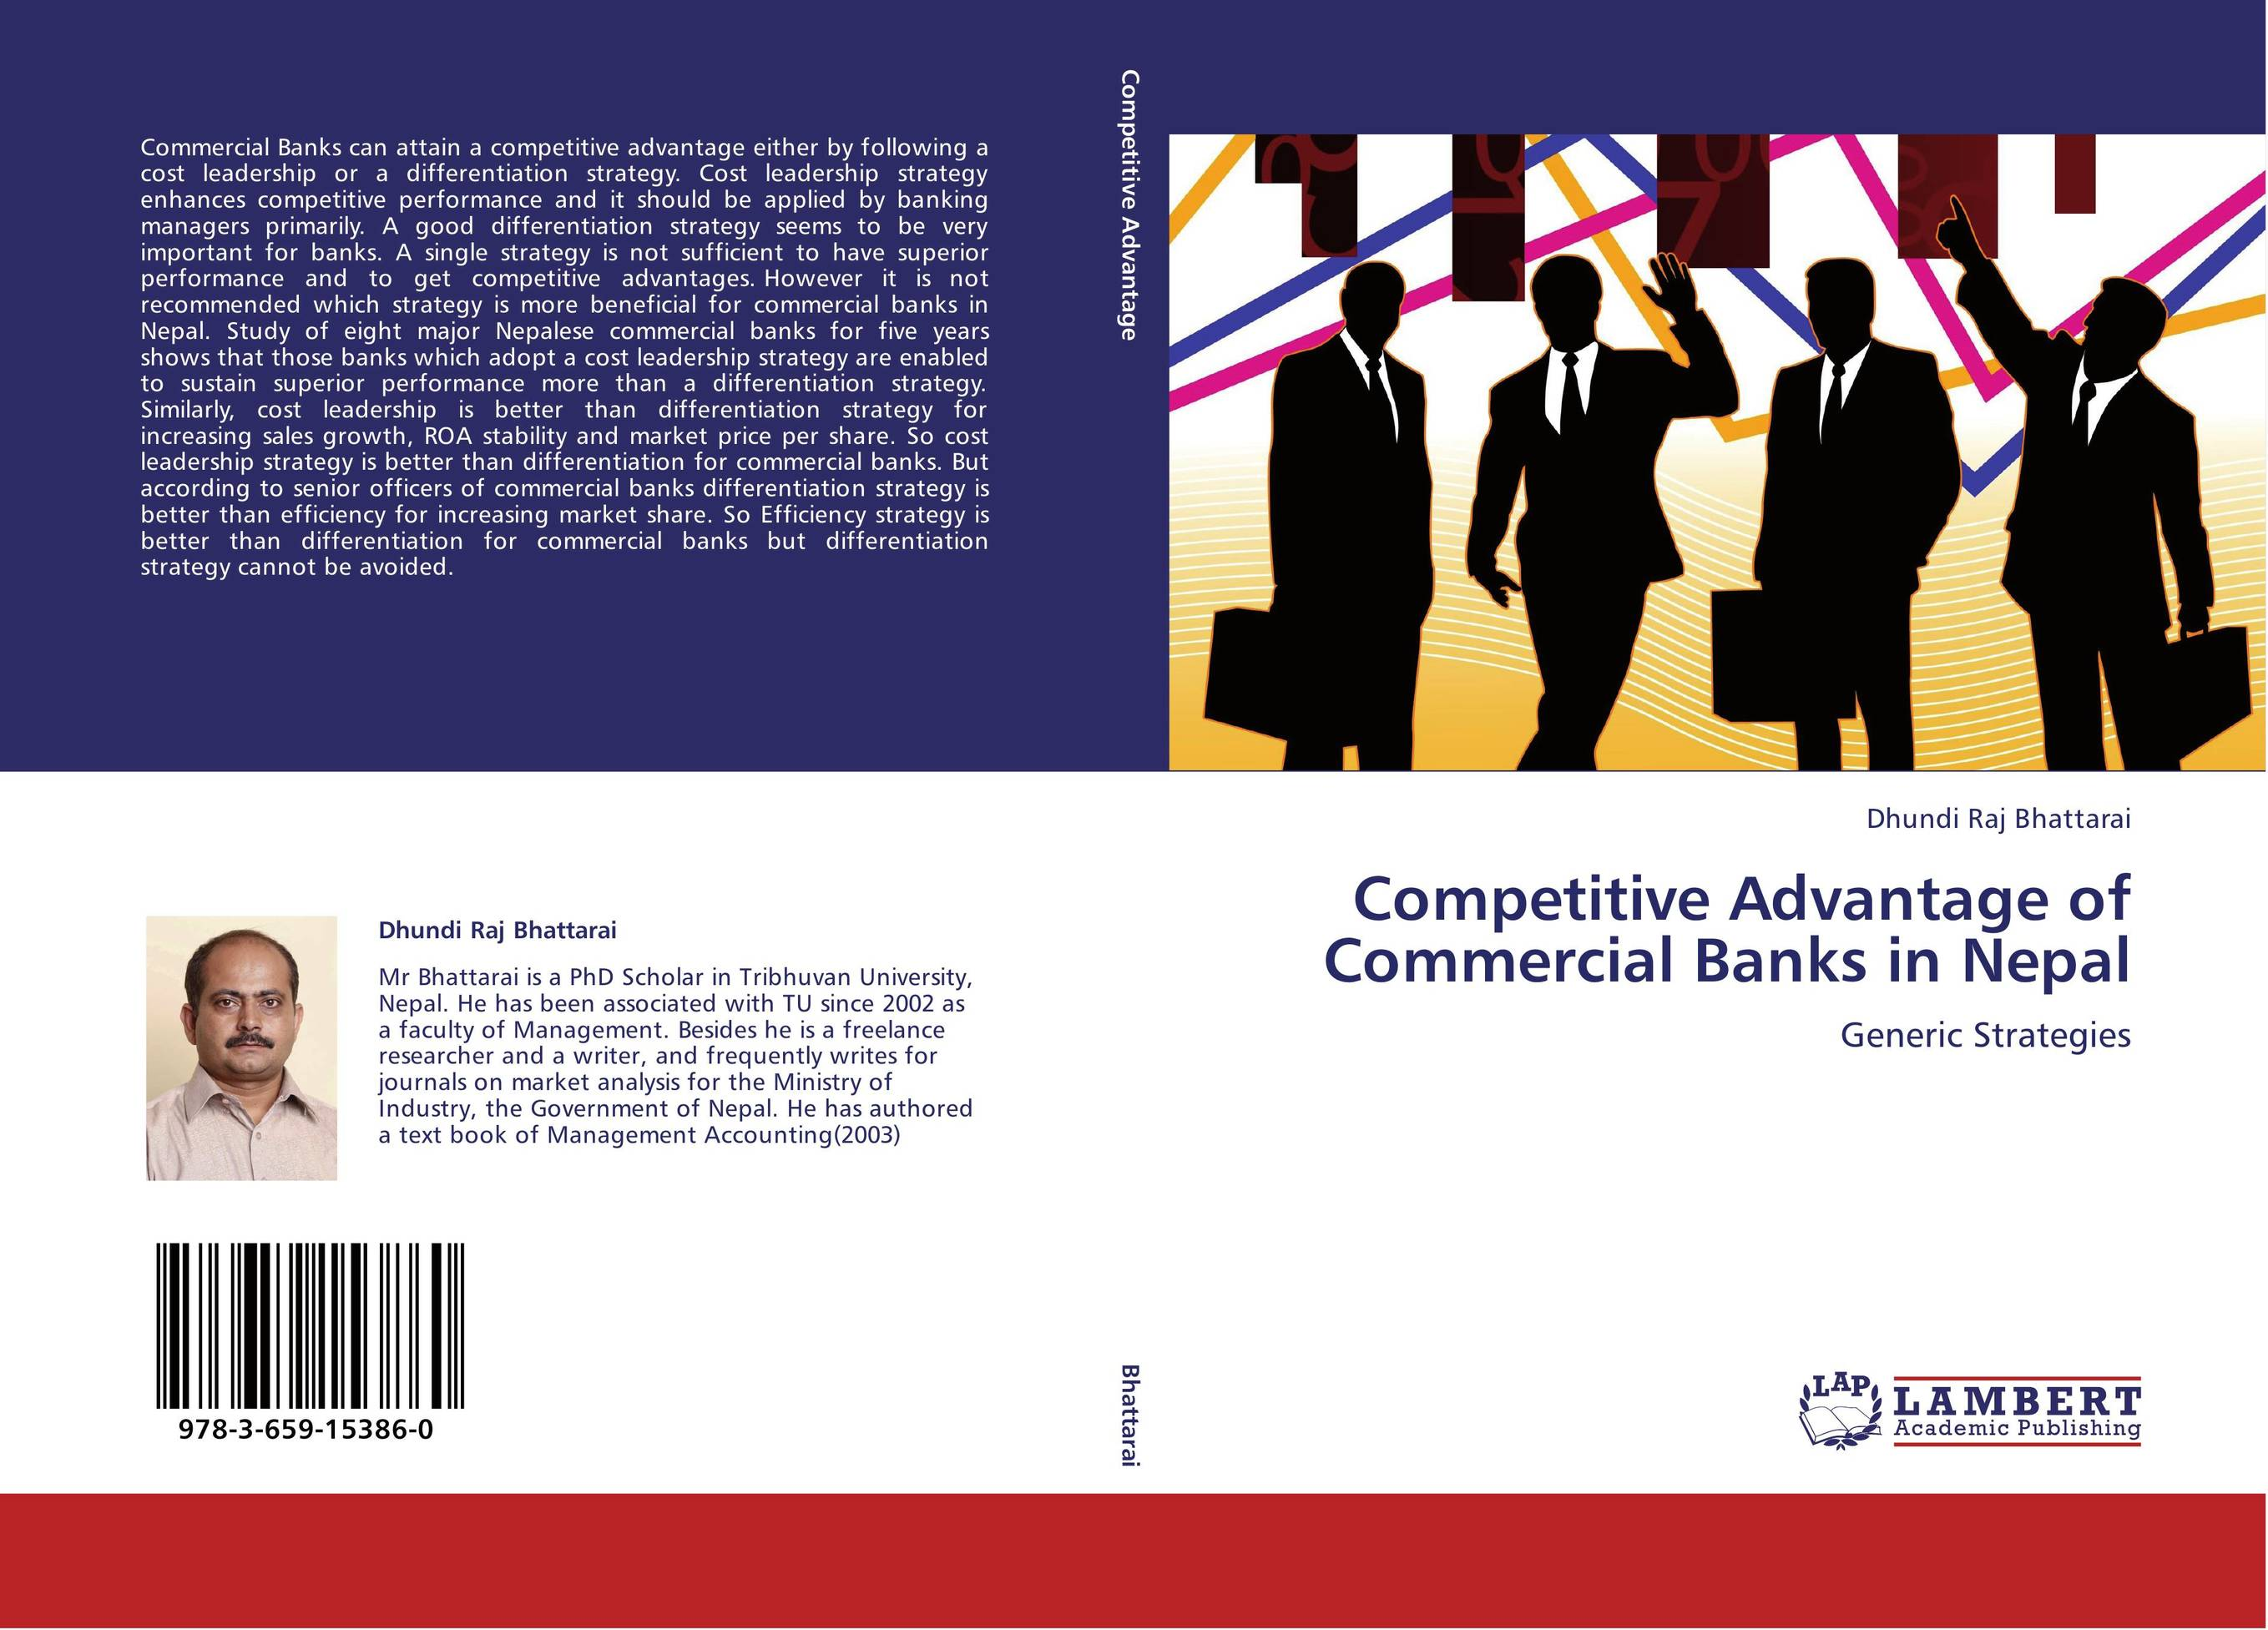 performance evaluation of commercial bank in nepal Management thesis financial performance analysis of commercial banks an evaluation of the financial and business performance of cal bank (ghana) limited between december 31, 2005 and december 31, 2007 1 introduction 11 the topic chosen the topic is evaluation of the financial and business performance of cal bank limited between december 31, 2005 and december 31 2007.